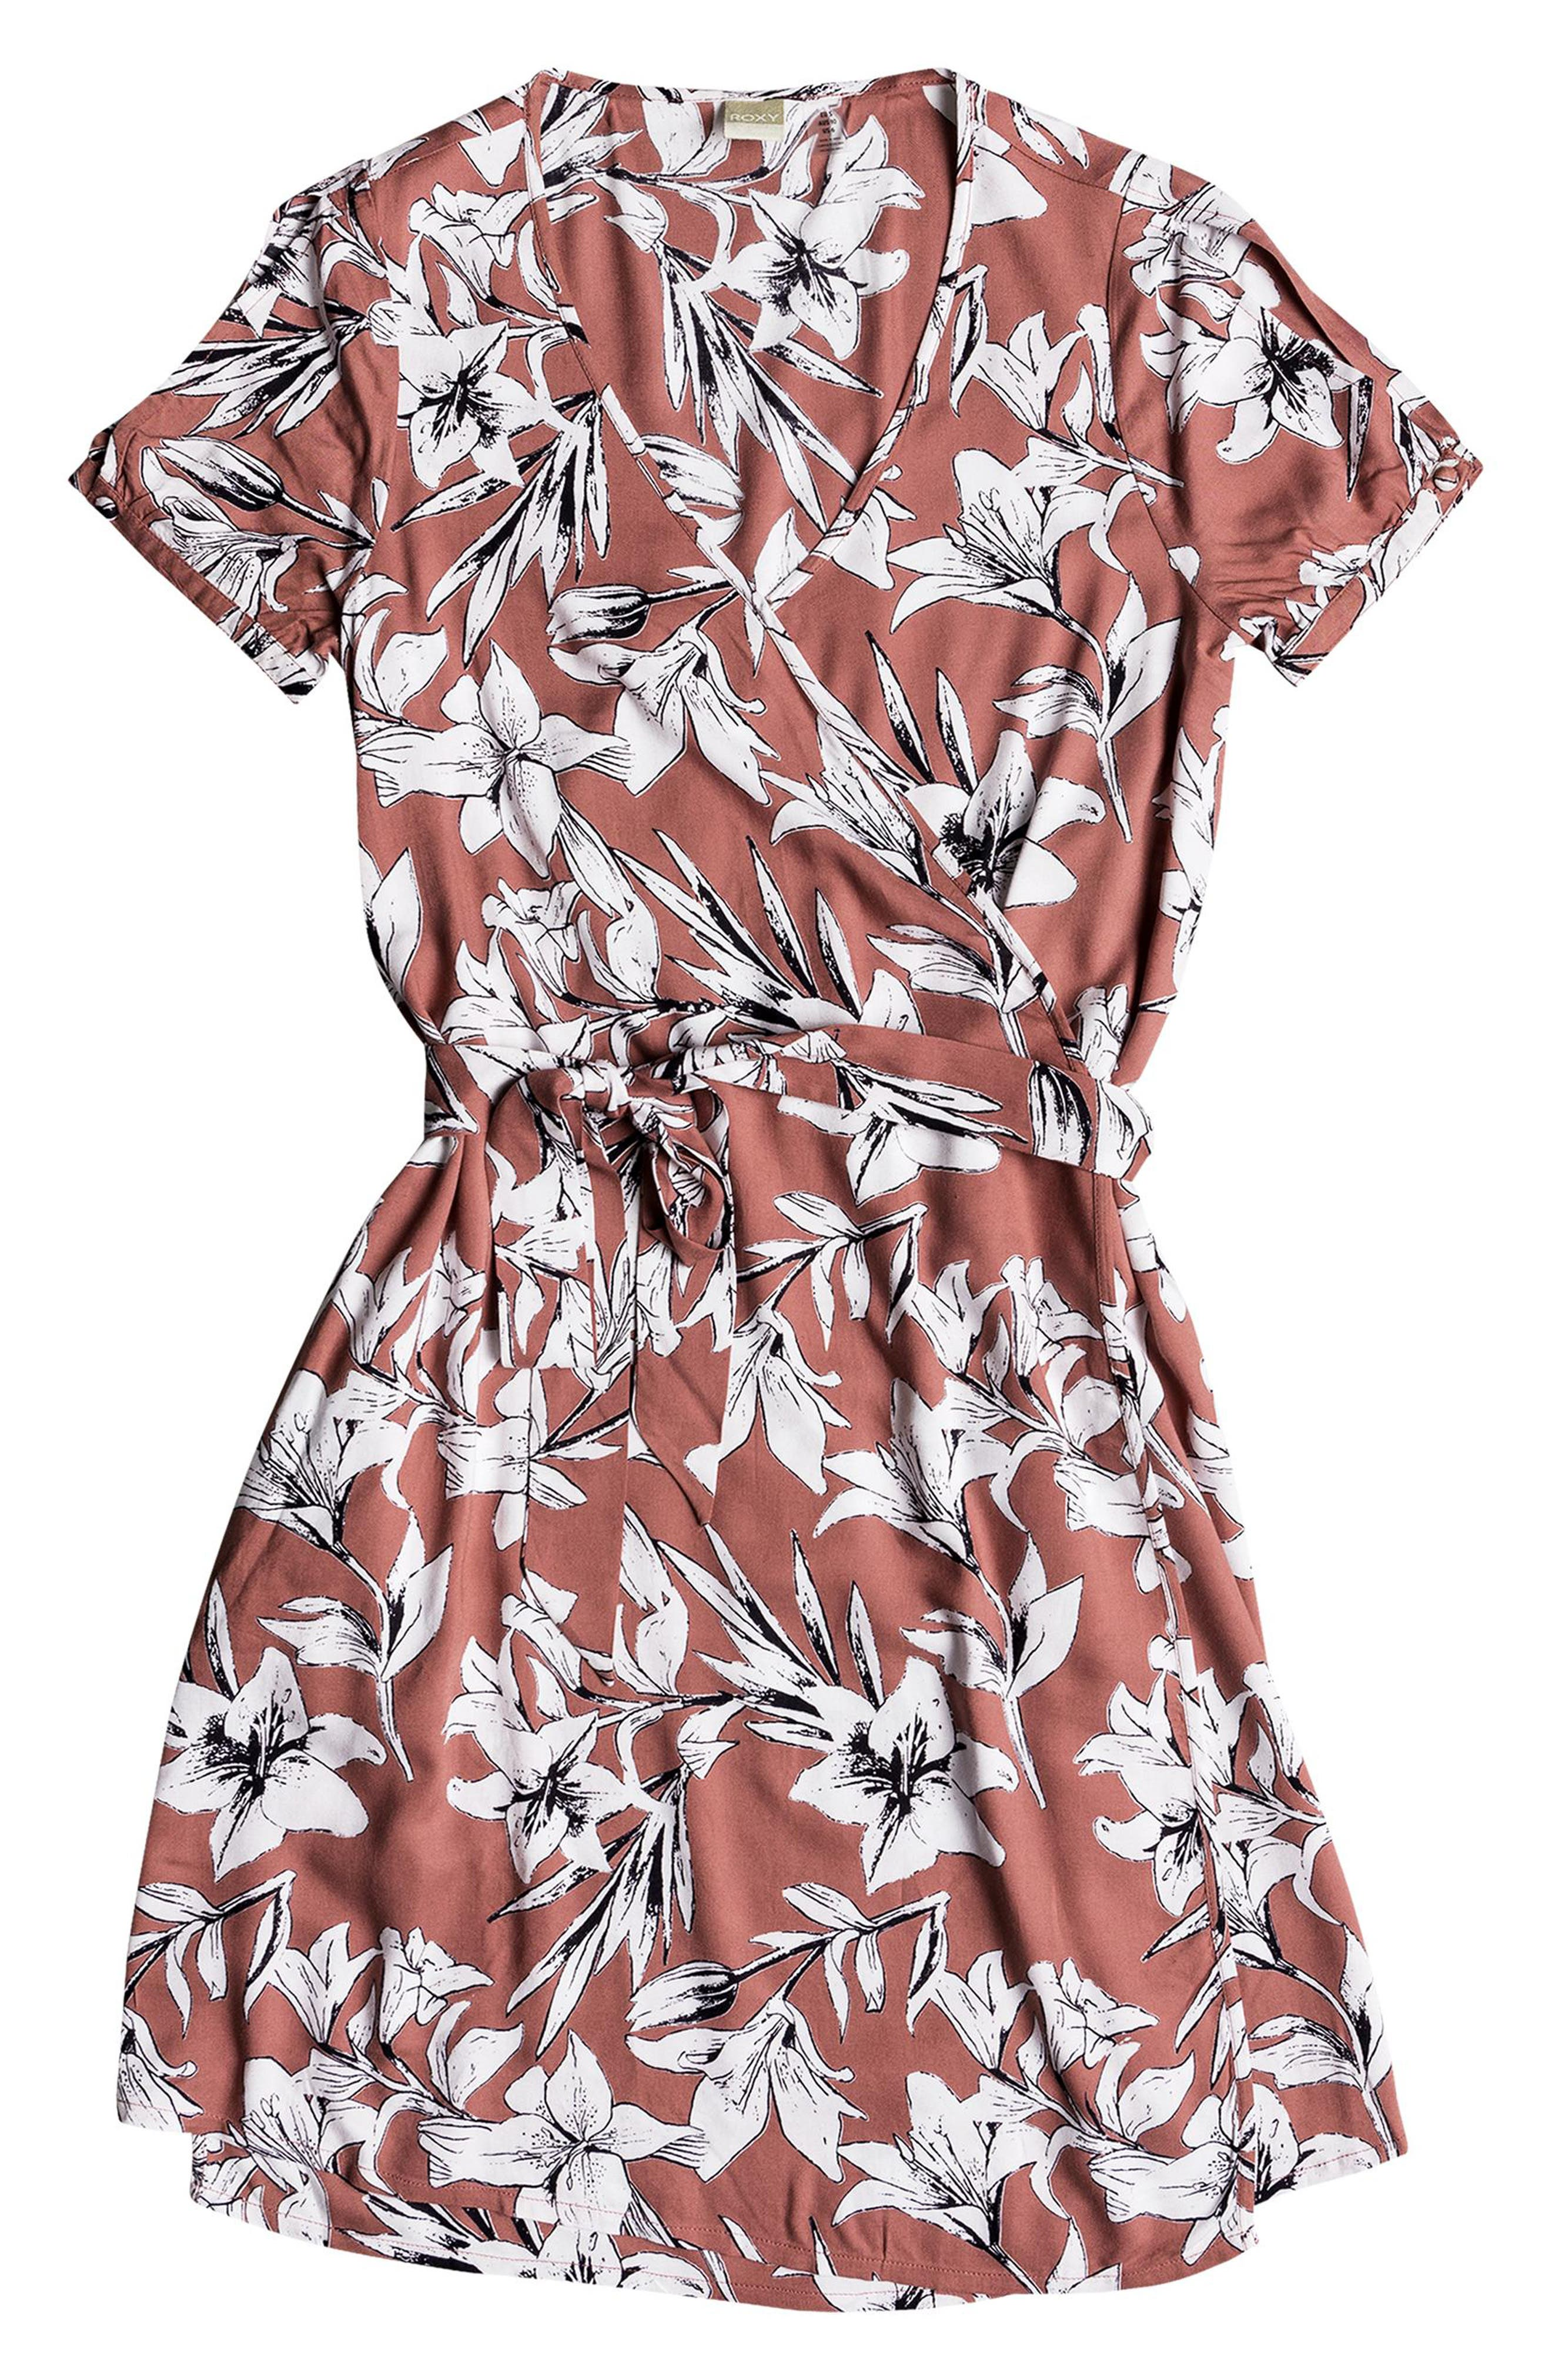 Monument View Floral Print Wrap Dress,                             Alternate thumbnail 4, color,                             WITHERED ROSE LILY HOUSE